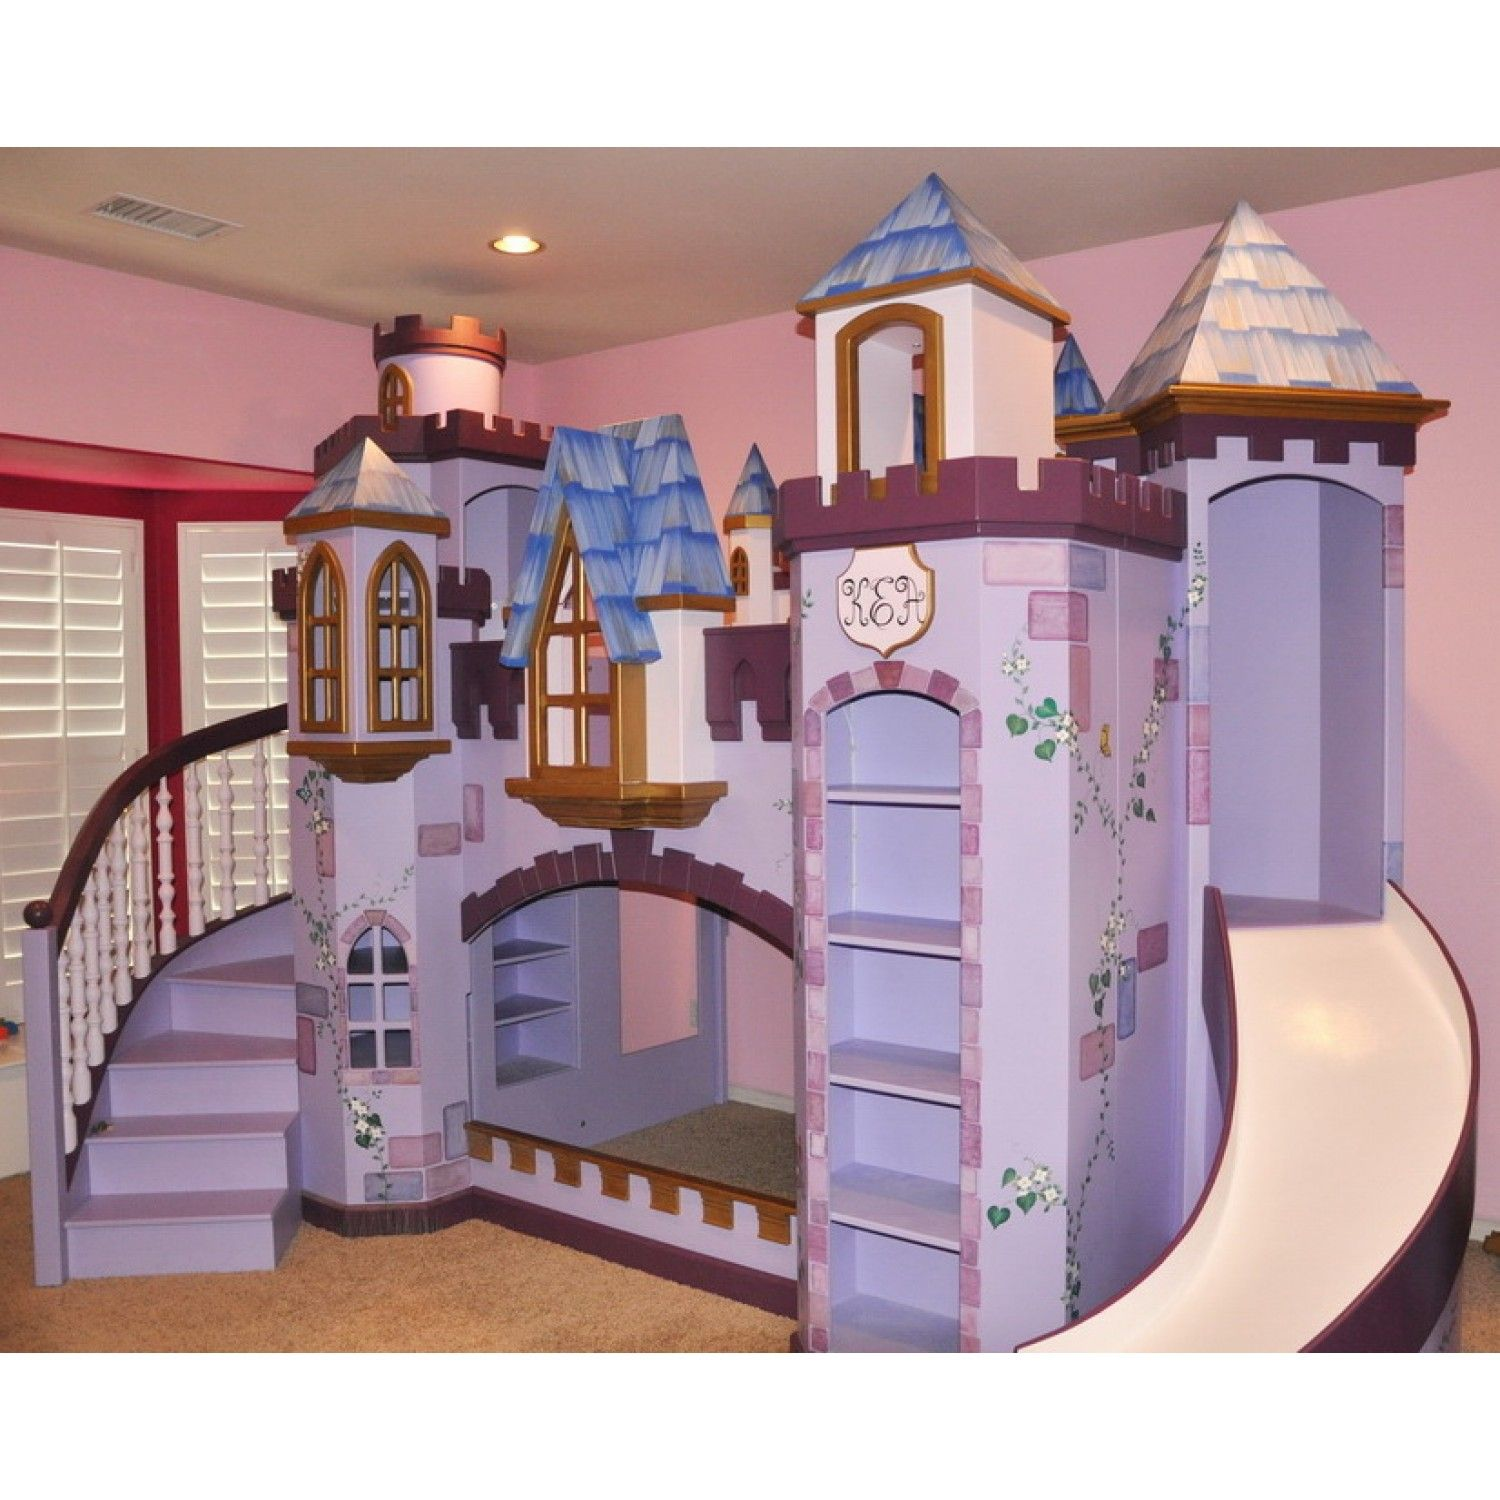 Best Elsa Bunk Bed Bedroom Fantasy Photos Foto Walls Diy 640 x 480